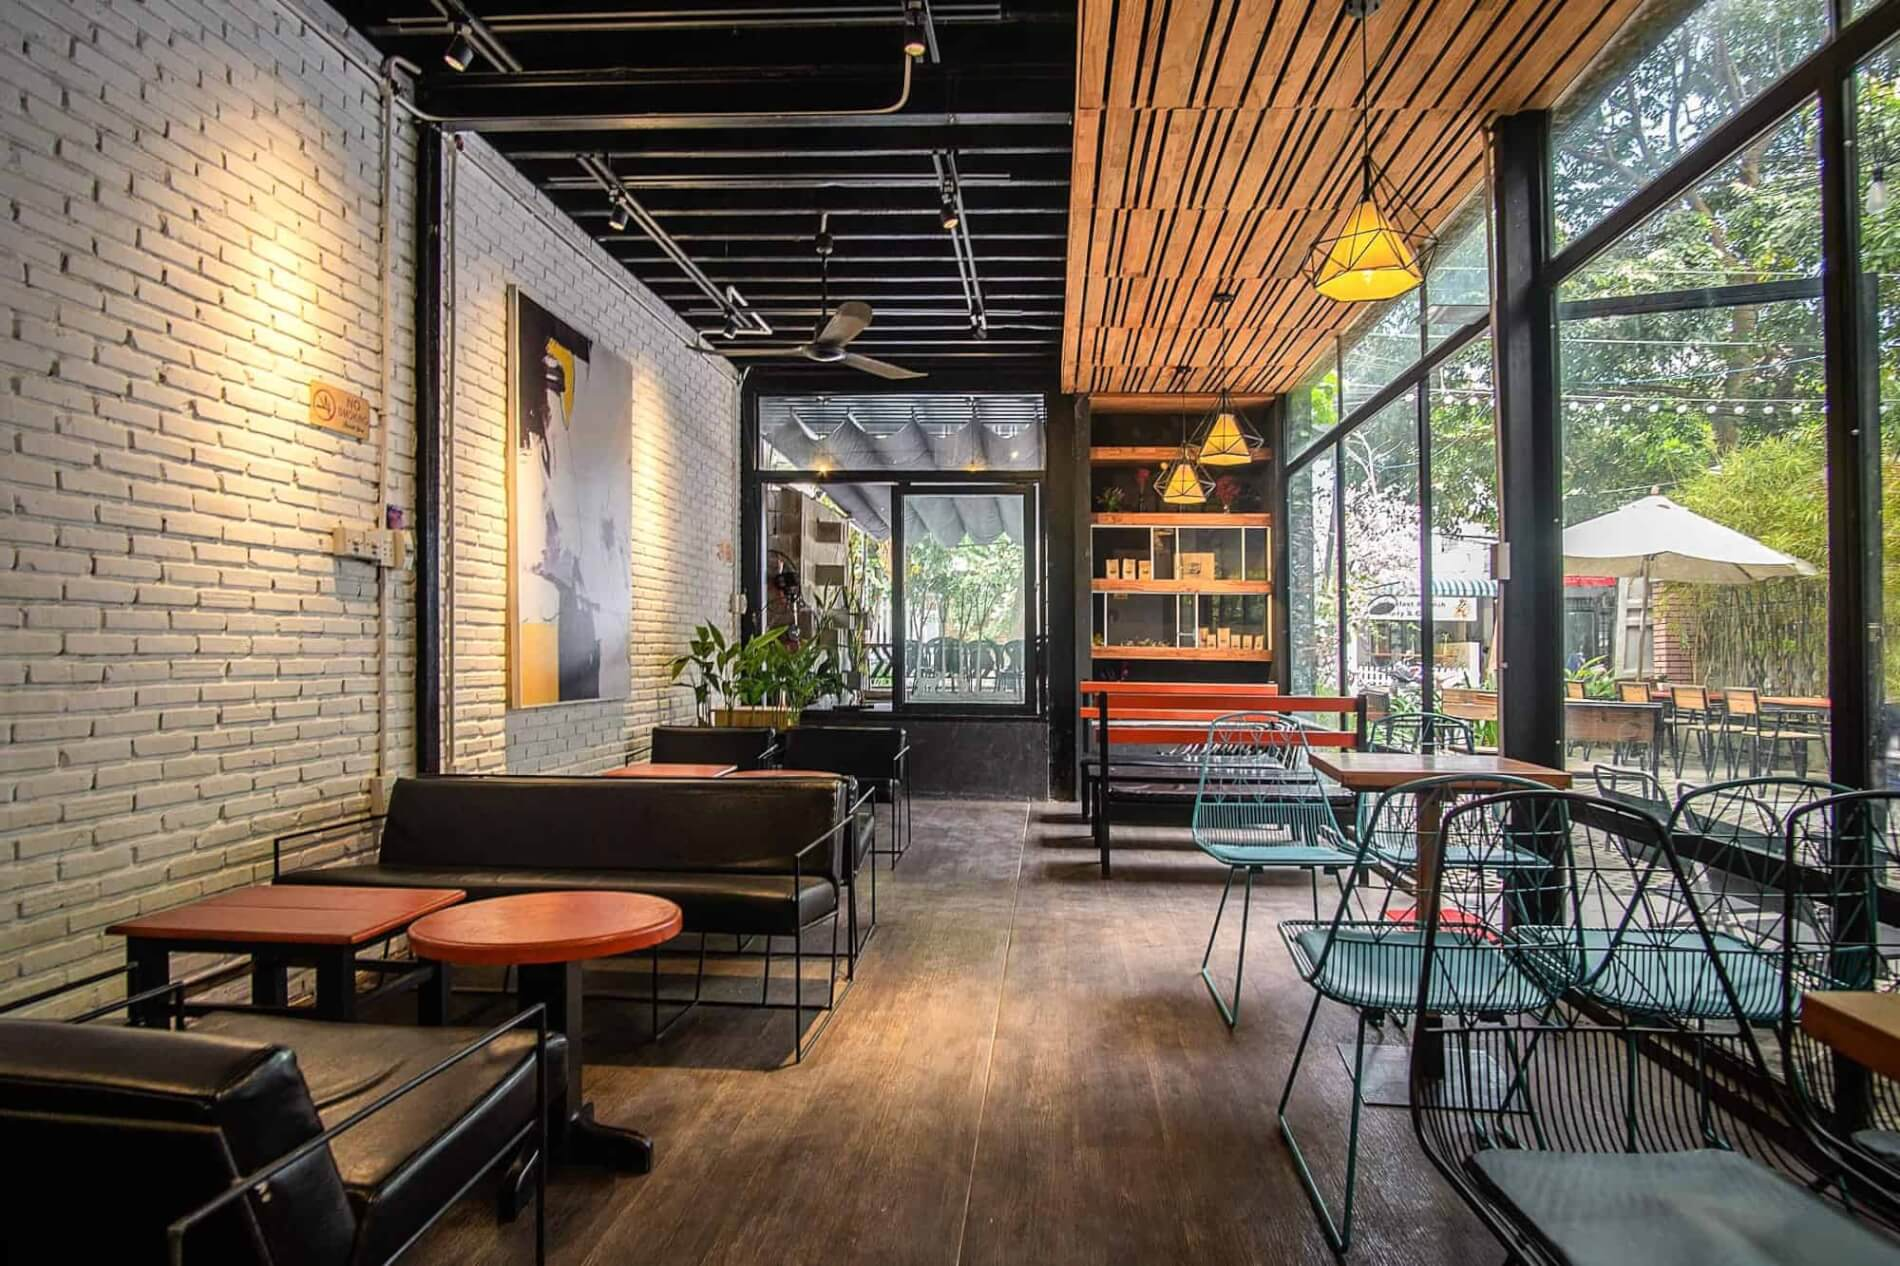 3A Coffee - Workspaces for digital nomads in Hoi An